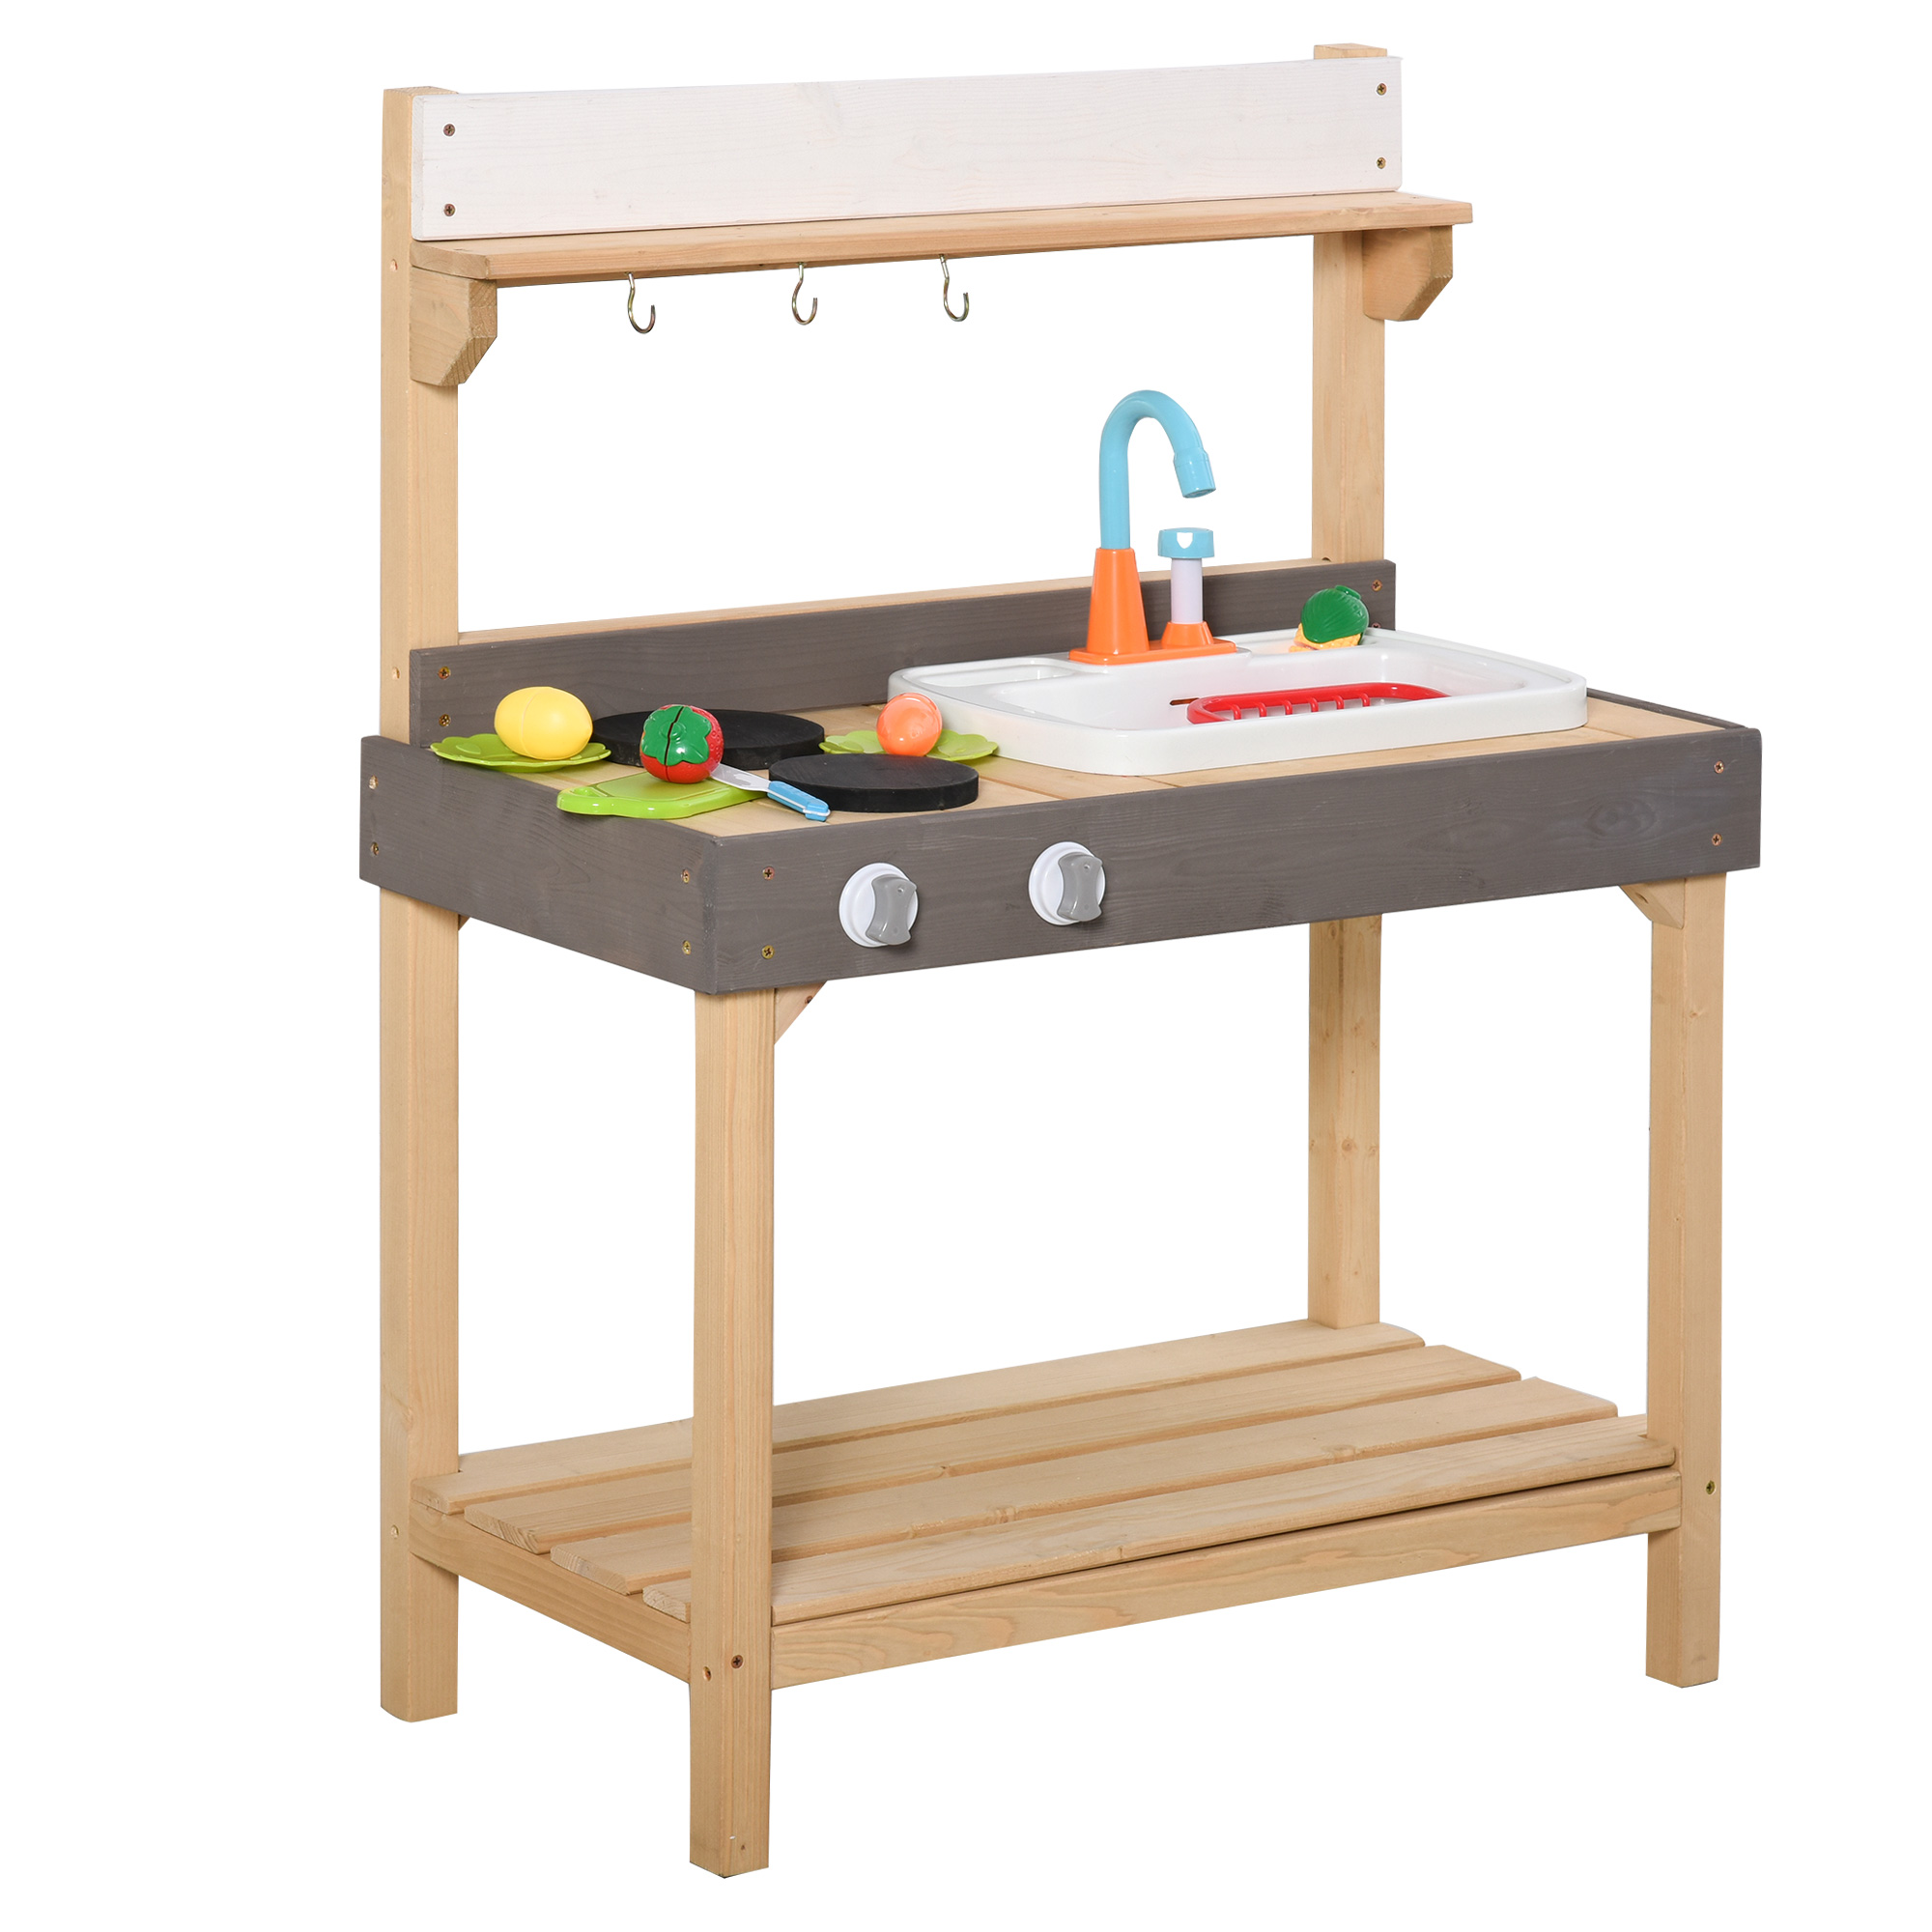 Outsunny Kitchen Playset, Kids Pretend Role Play Toy, Educational Game with Sink, Running Water,Vegetable,Educational Role Play Set | Aosom IE